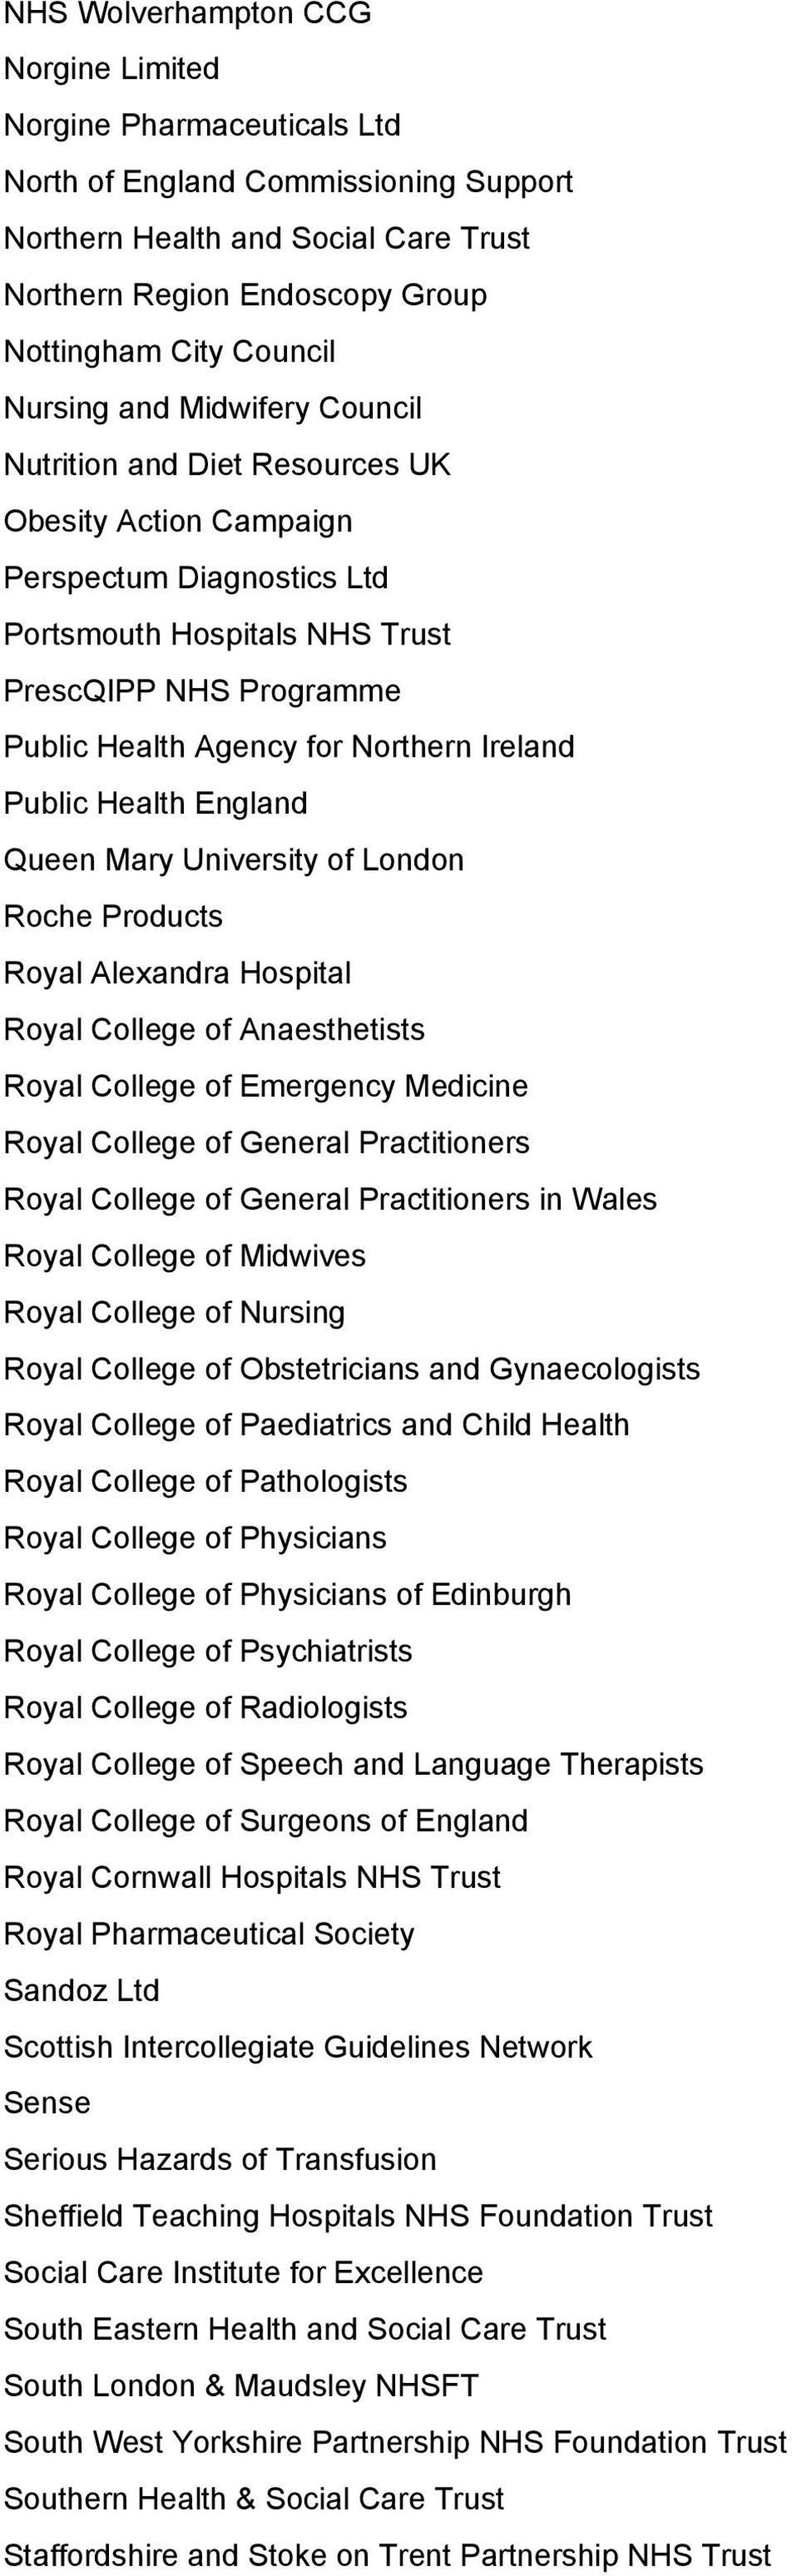 Northern Ireland Public Health England Queen Mary University of London Roche Products Royal Alexandra Hospital Royal College of Anaesthetists Royal College of Emergency Medicine Royal College of